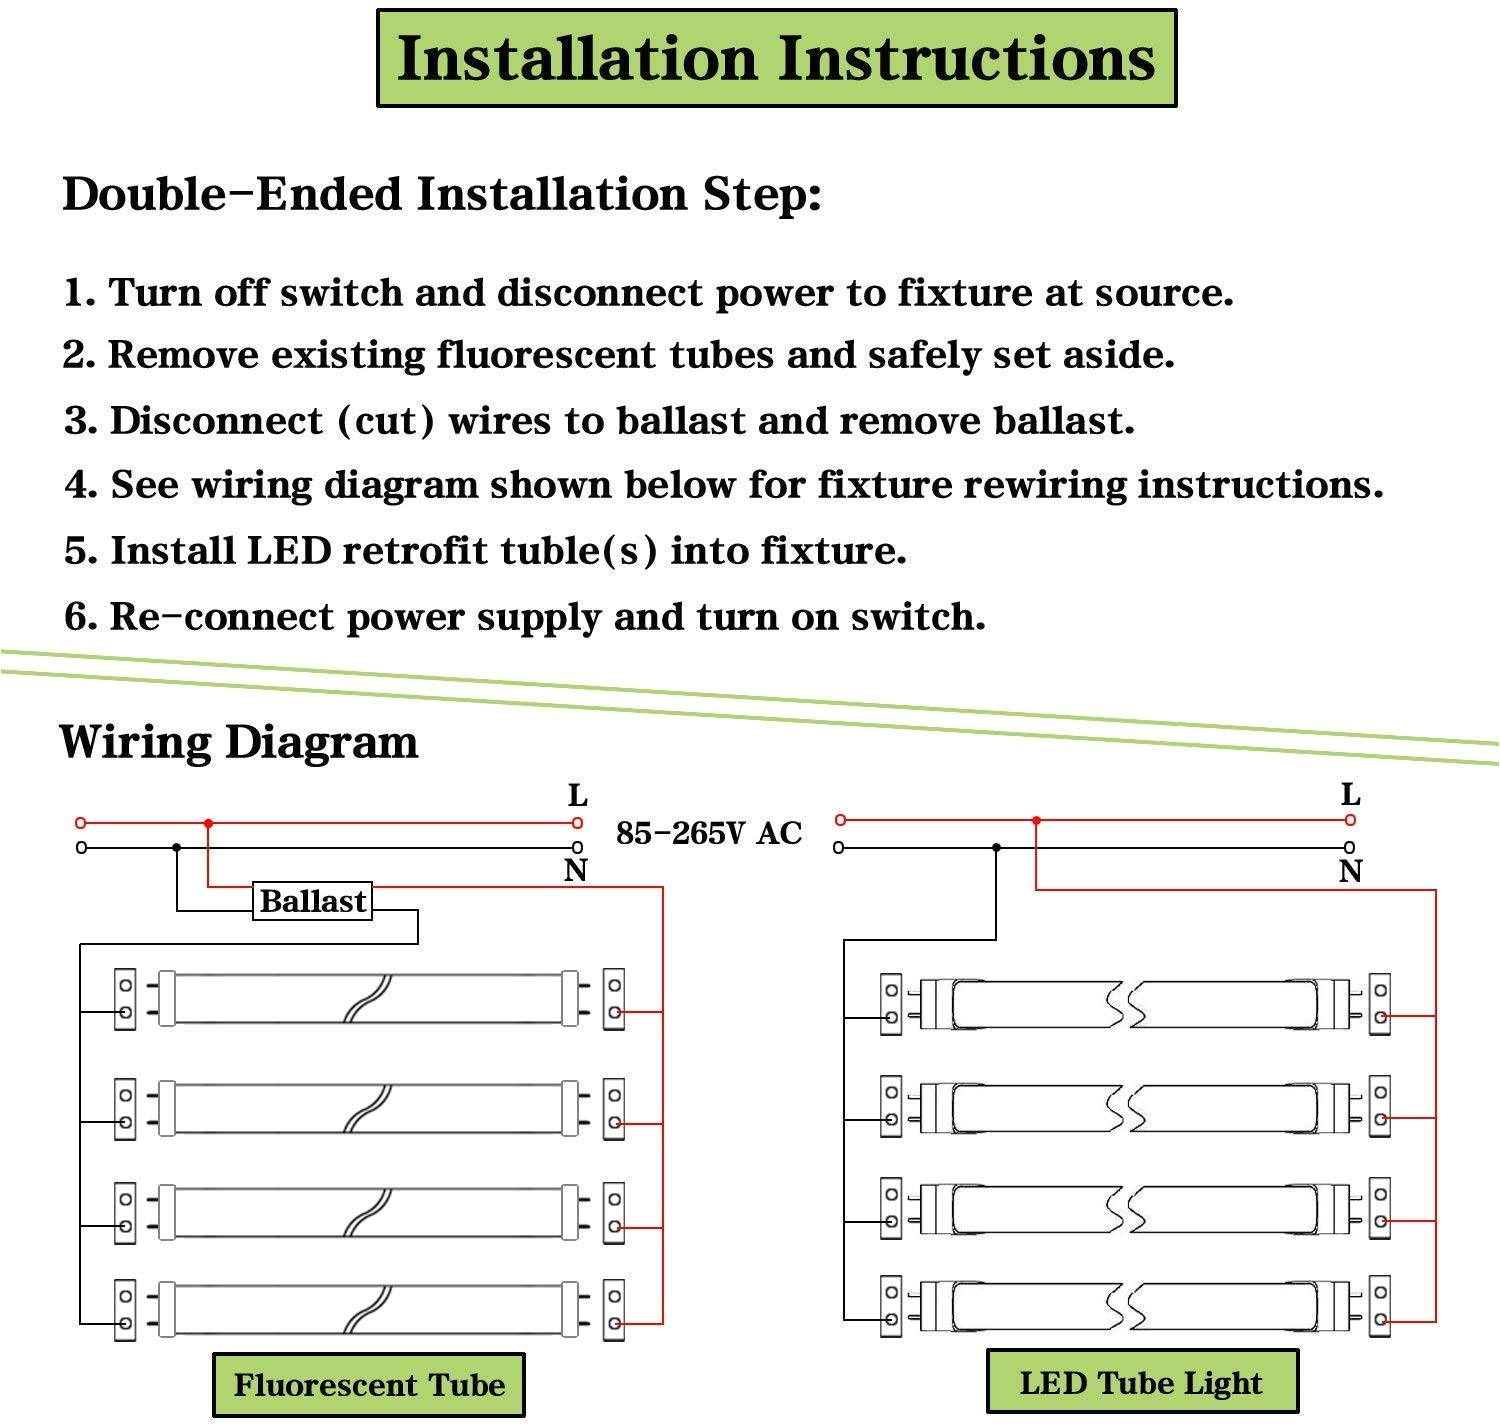 Parmida Led T8 Wiring Diagram T8 4ft Led Tube Light 6000k Cool White 28w 2800lm Clear Cover 4 Foot 48 T12 Led Bulbs Replacement for Garage Warehouse Shops Fluorescent Fixture